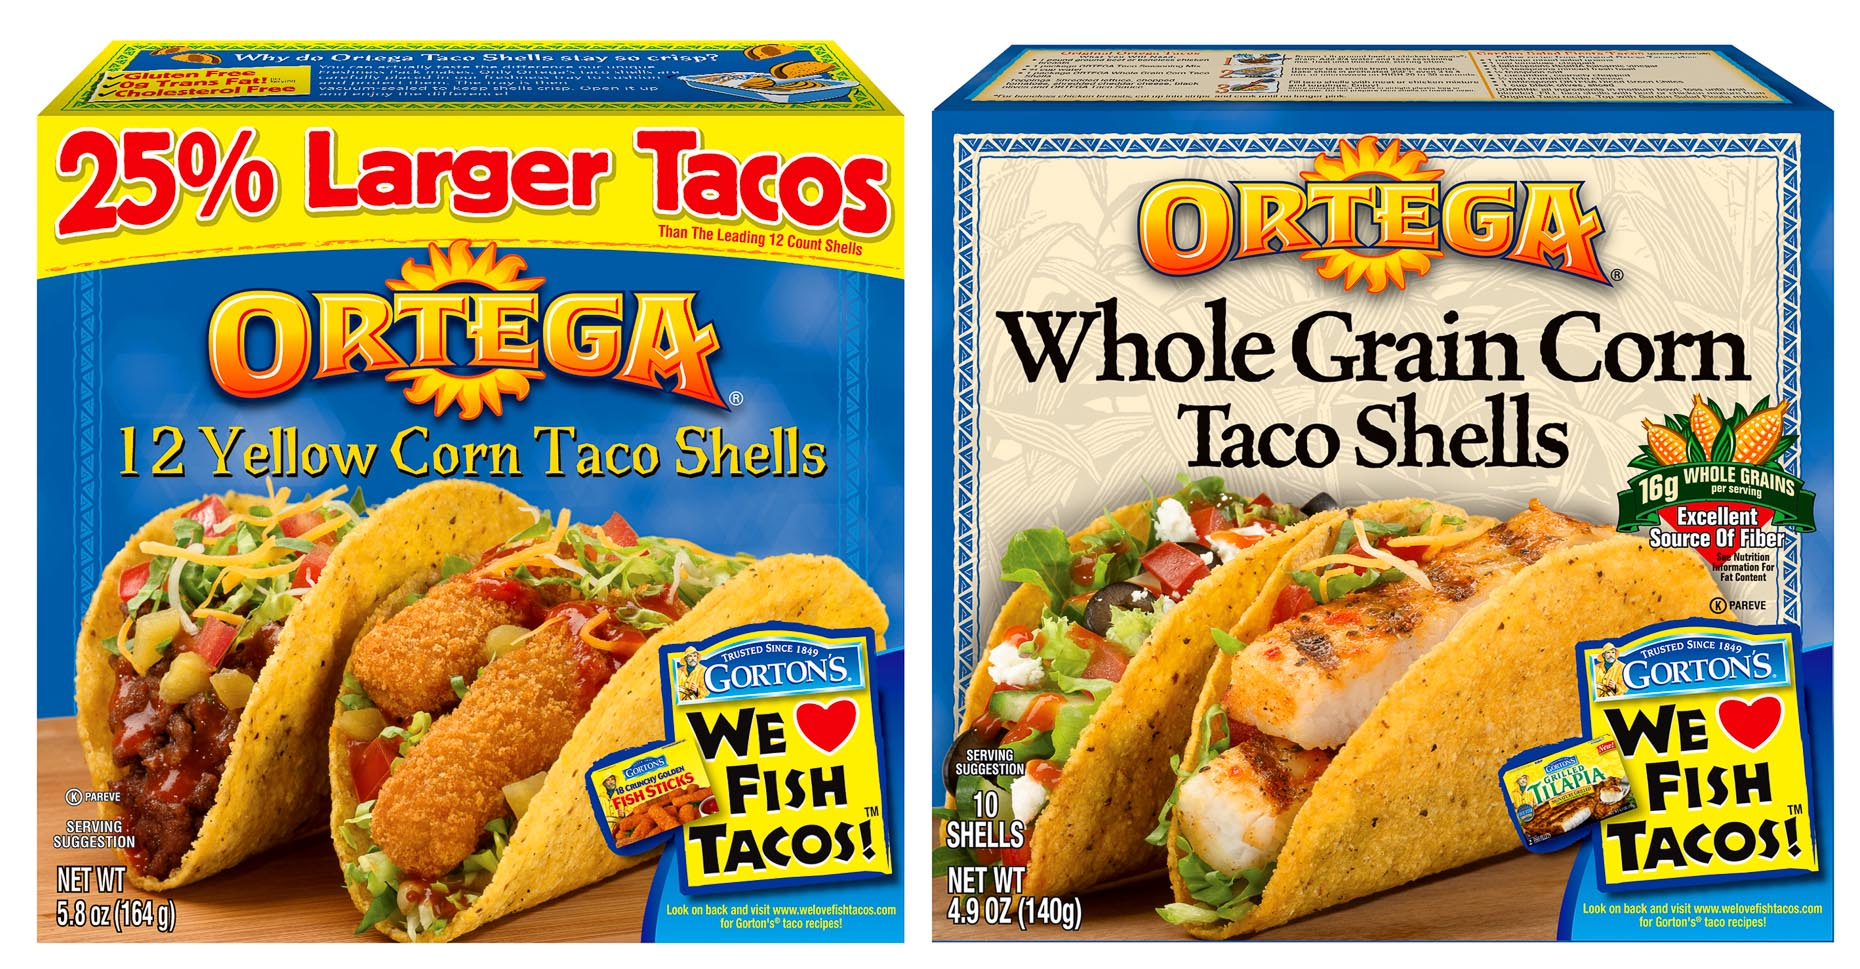 Ortega Taco Packaging Photo